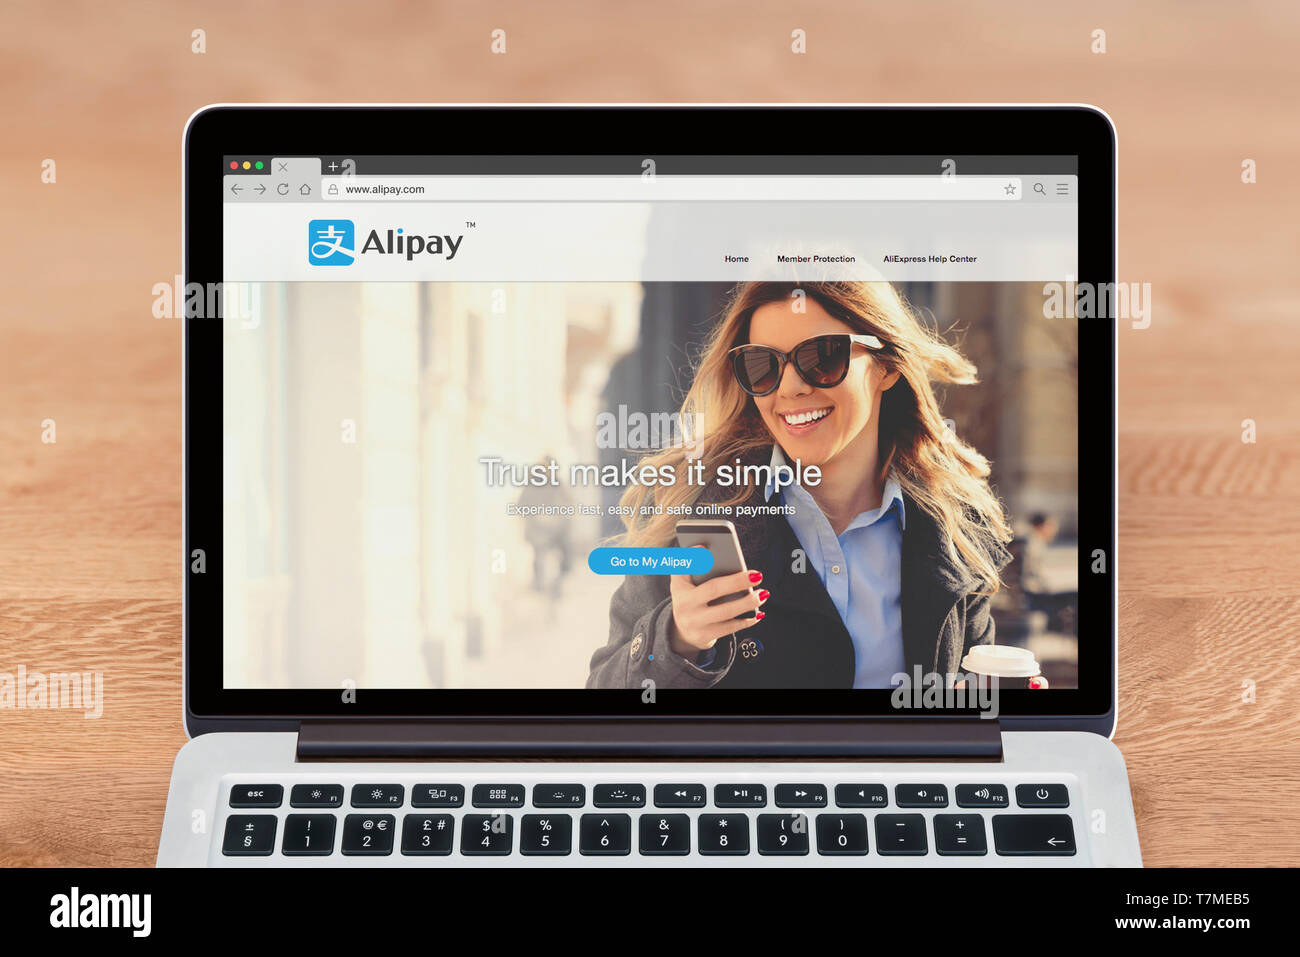 An Apple Macbook displays the Alipay website (Editorial use only). - Stock Image